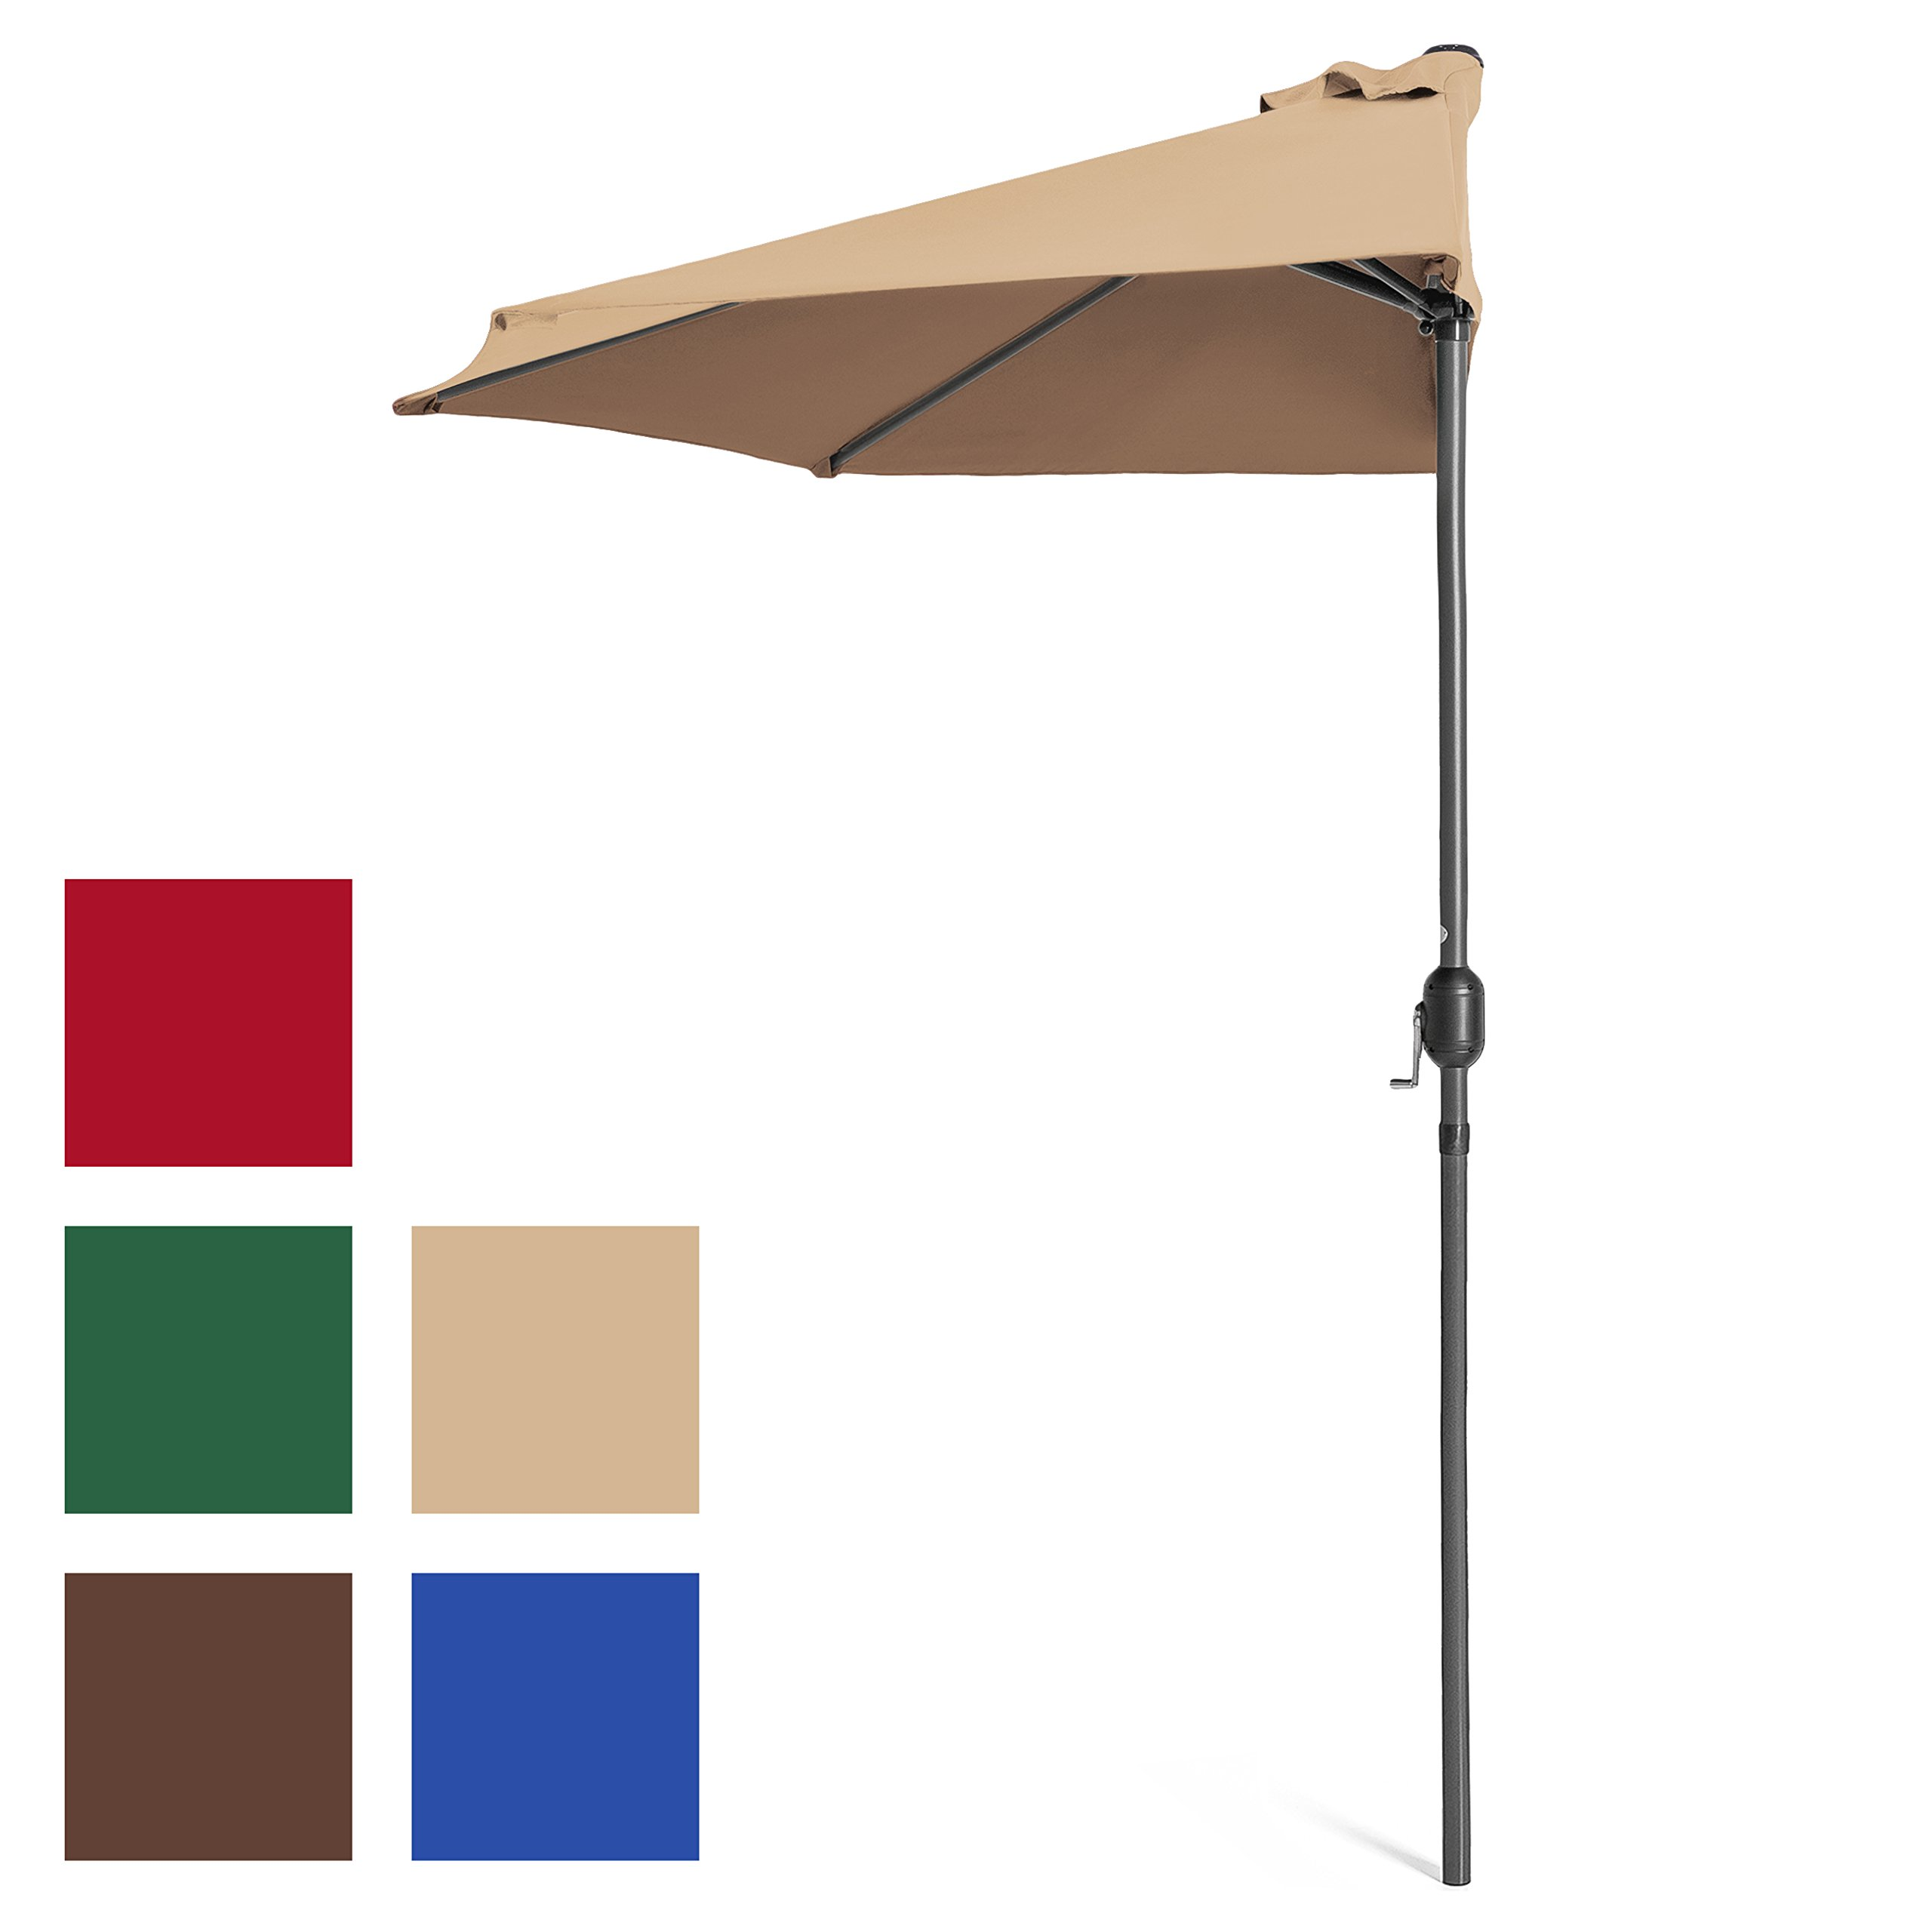 Best Choice Products 9ft Steel Half Patio Umbrella for Backyard, Deck, Garden w/Crank Mechanism, UV- and Water-Resistant Fabric - Tan by Best Choice Products